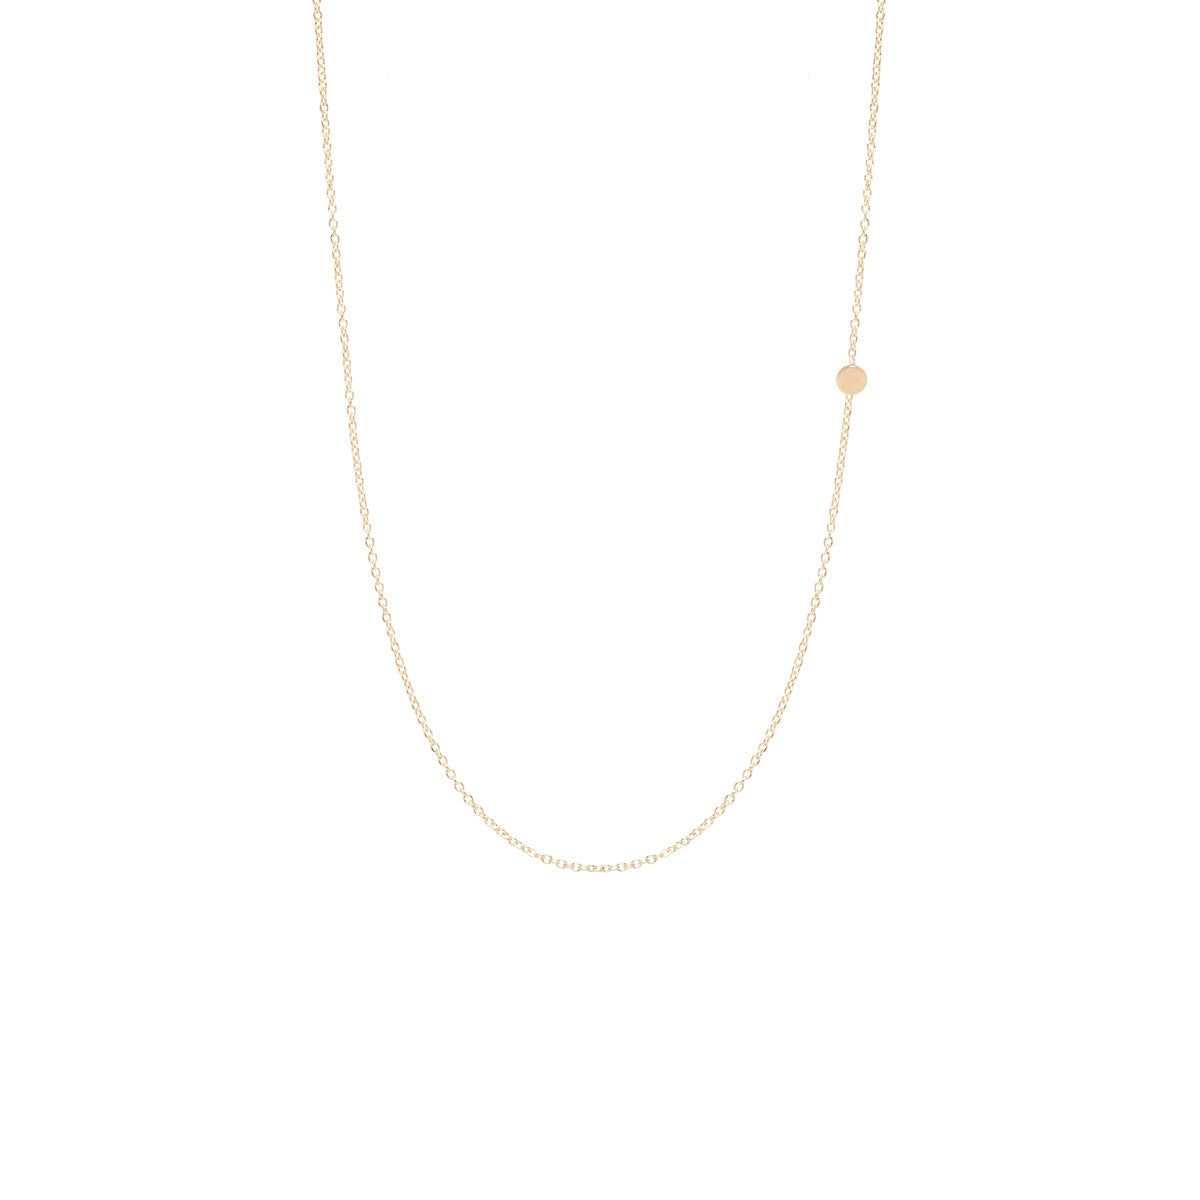 Zoë Chicco 14kt Yellow Gold Itty Bitty Off-Center Disc Necklace